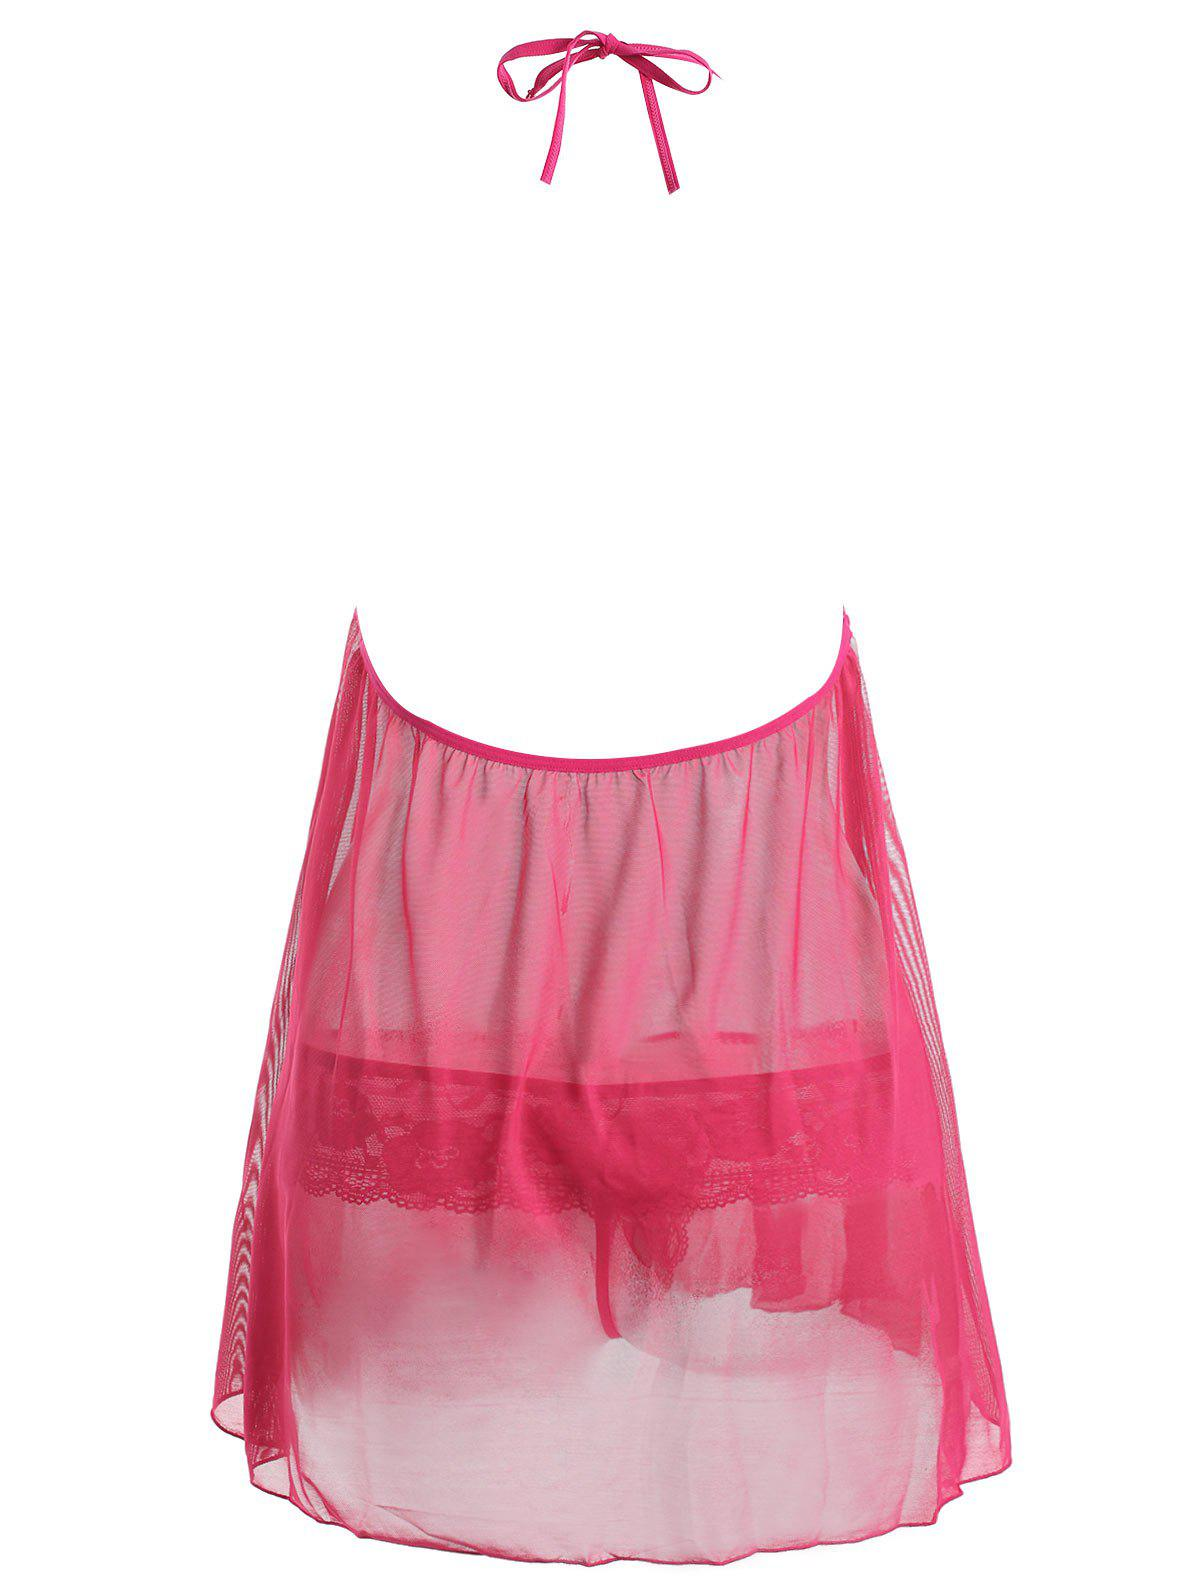 Halter Plunge Plus Size Lace Sheer Babydoll - ROSE RED 6XL